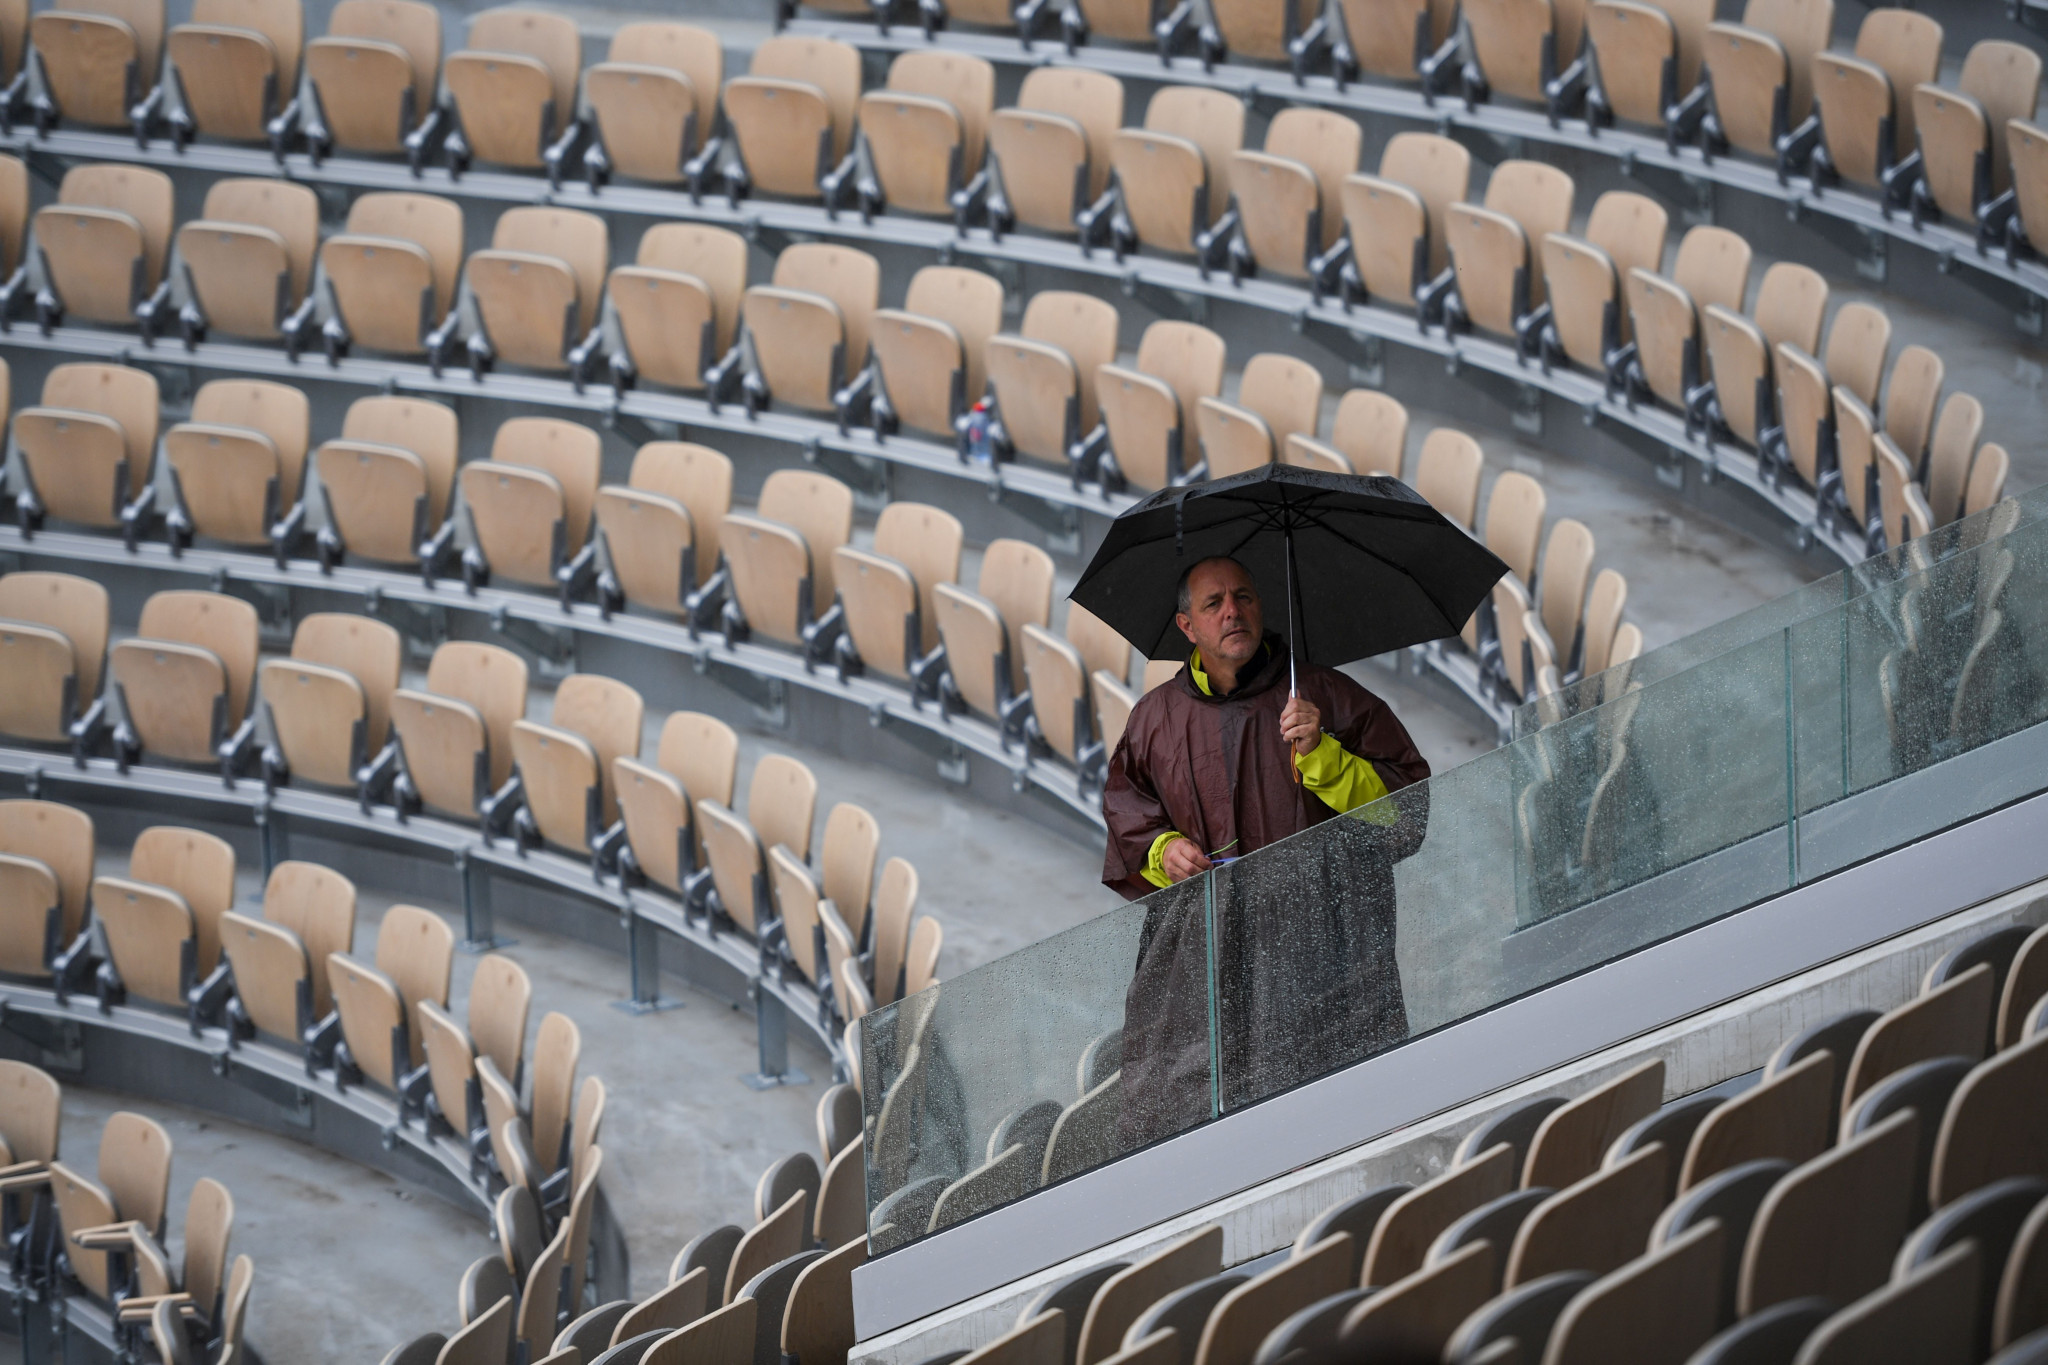 A spectator remains optimistic for play on day 11 of the French Open ©Getty Images